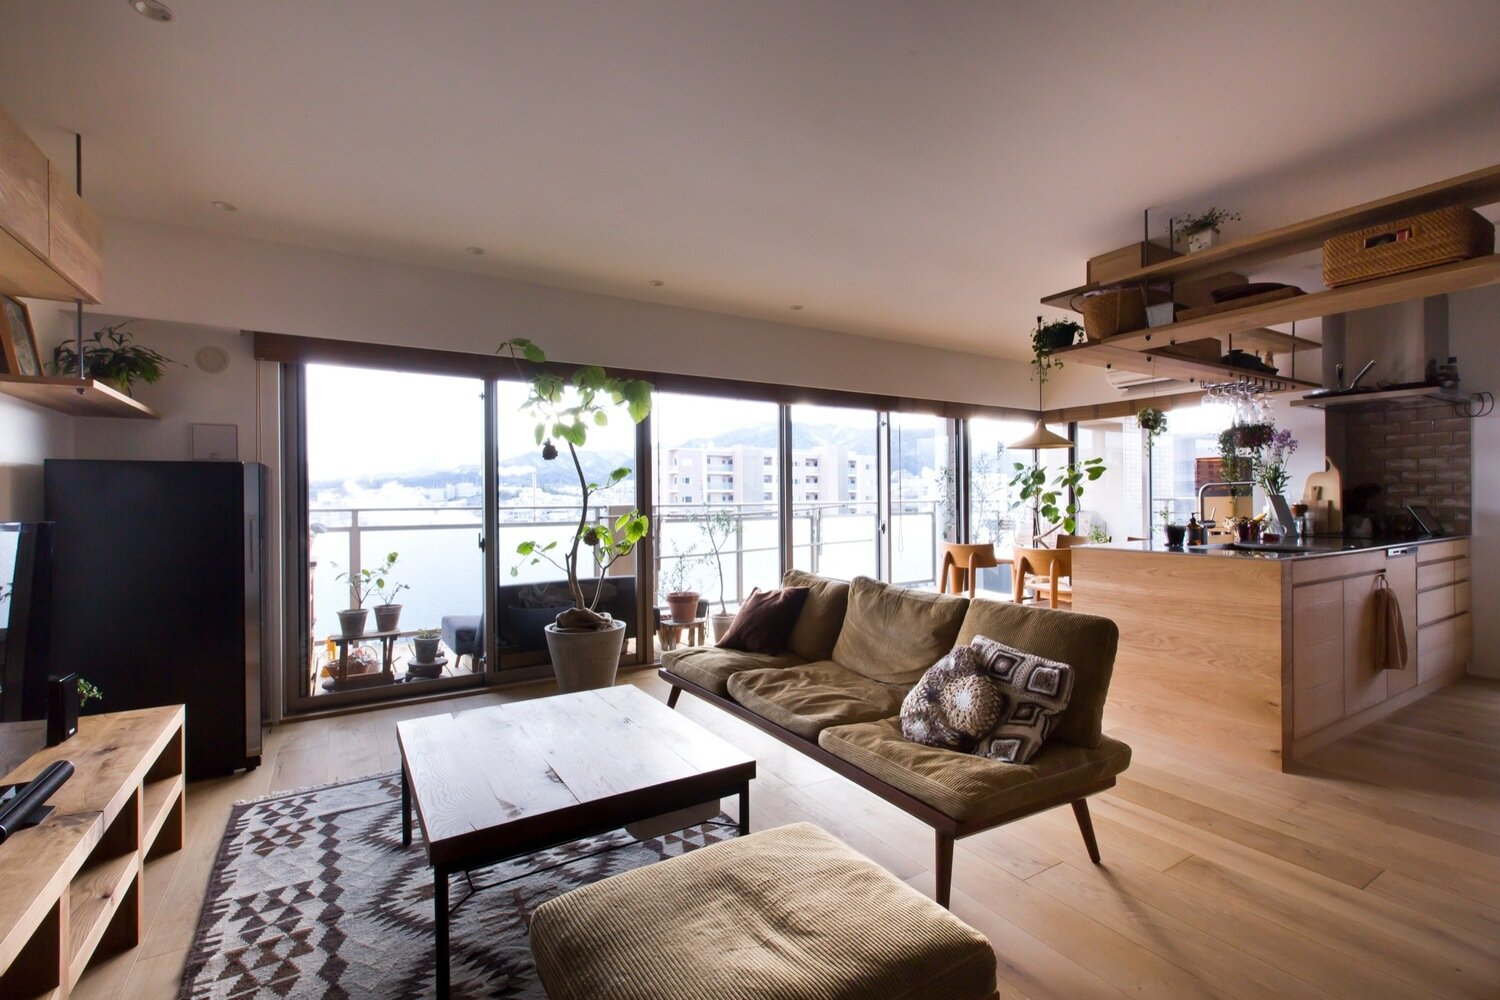 A Contemporary Apartment For People And Cats By ALTS